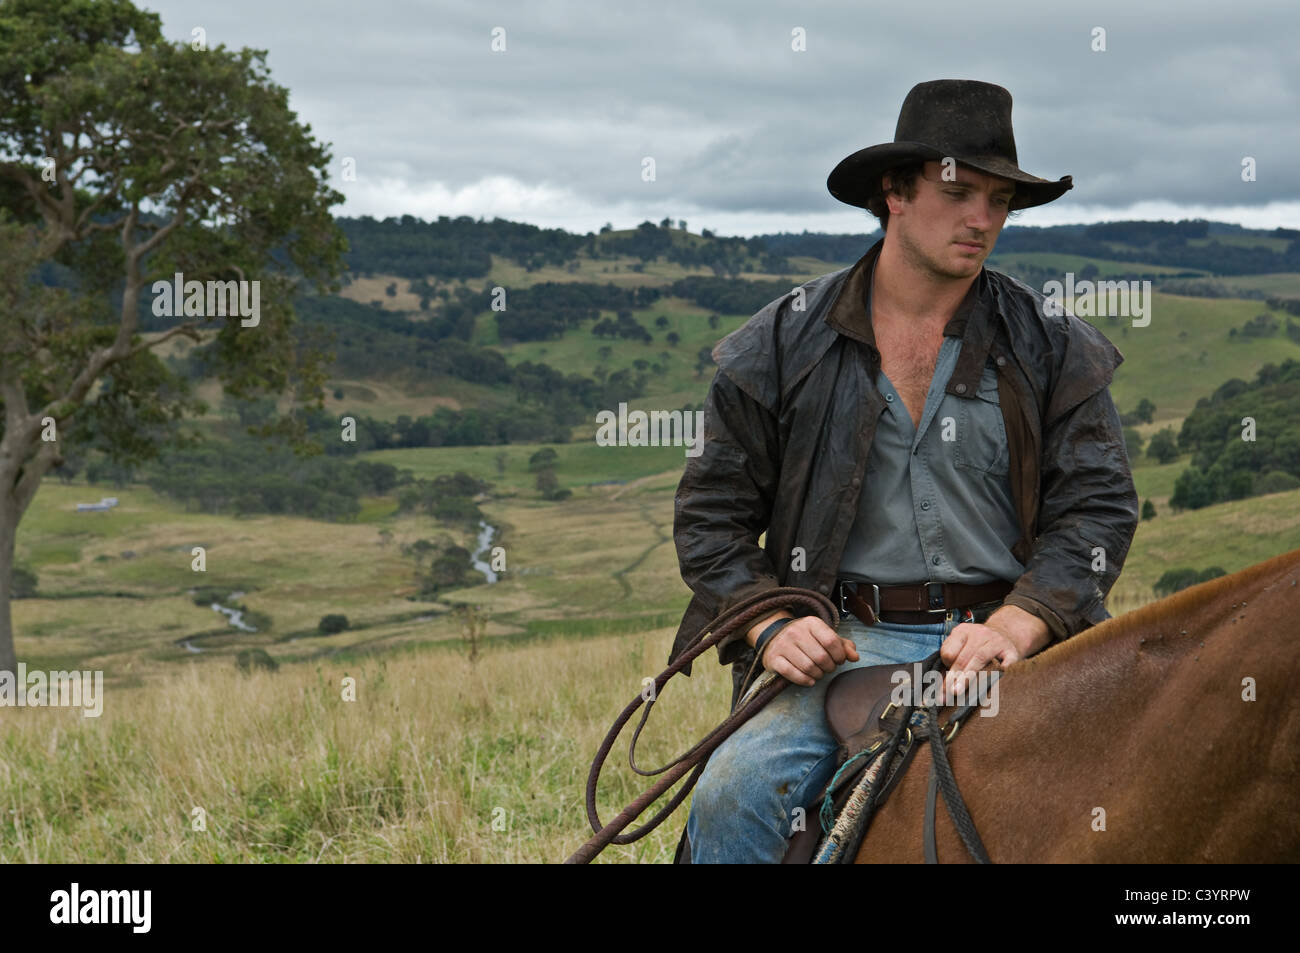 Man on horse in countrside Stock Photo